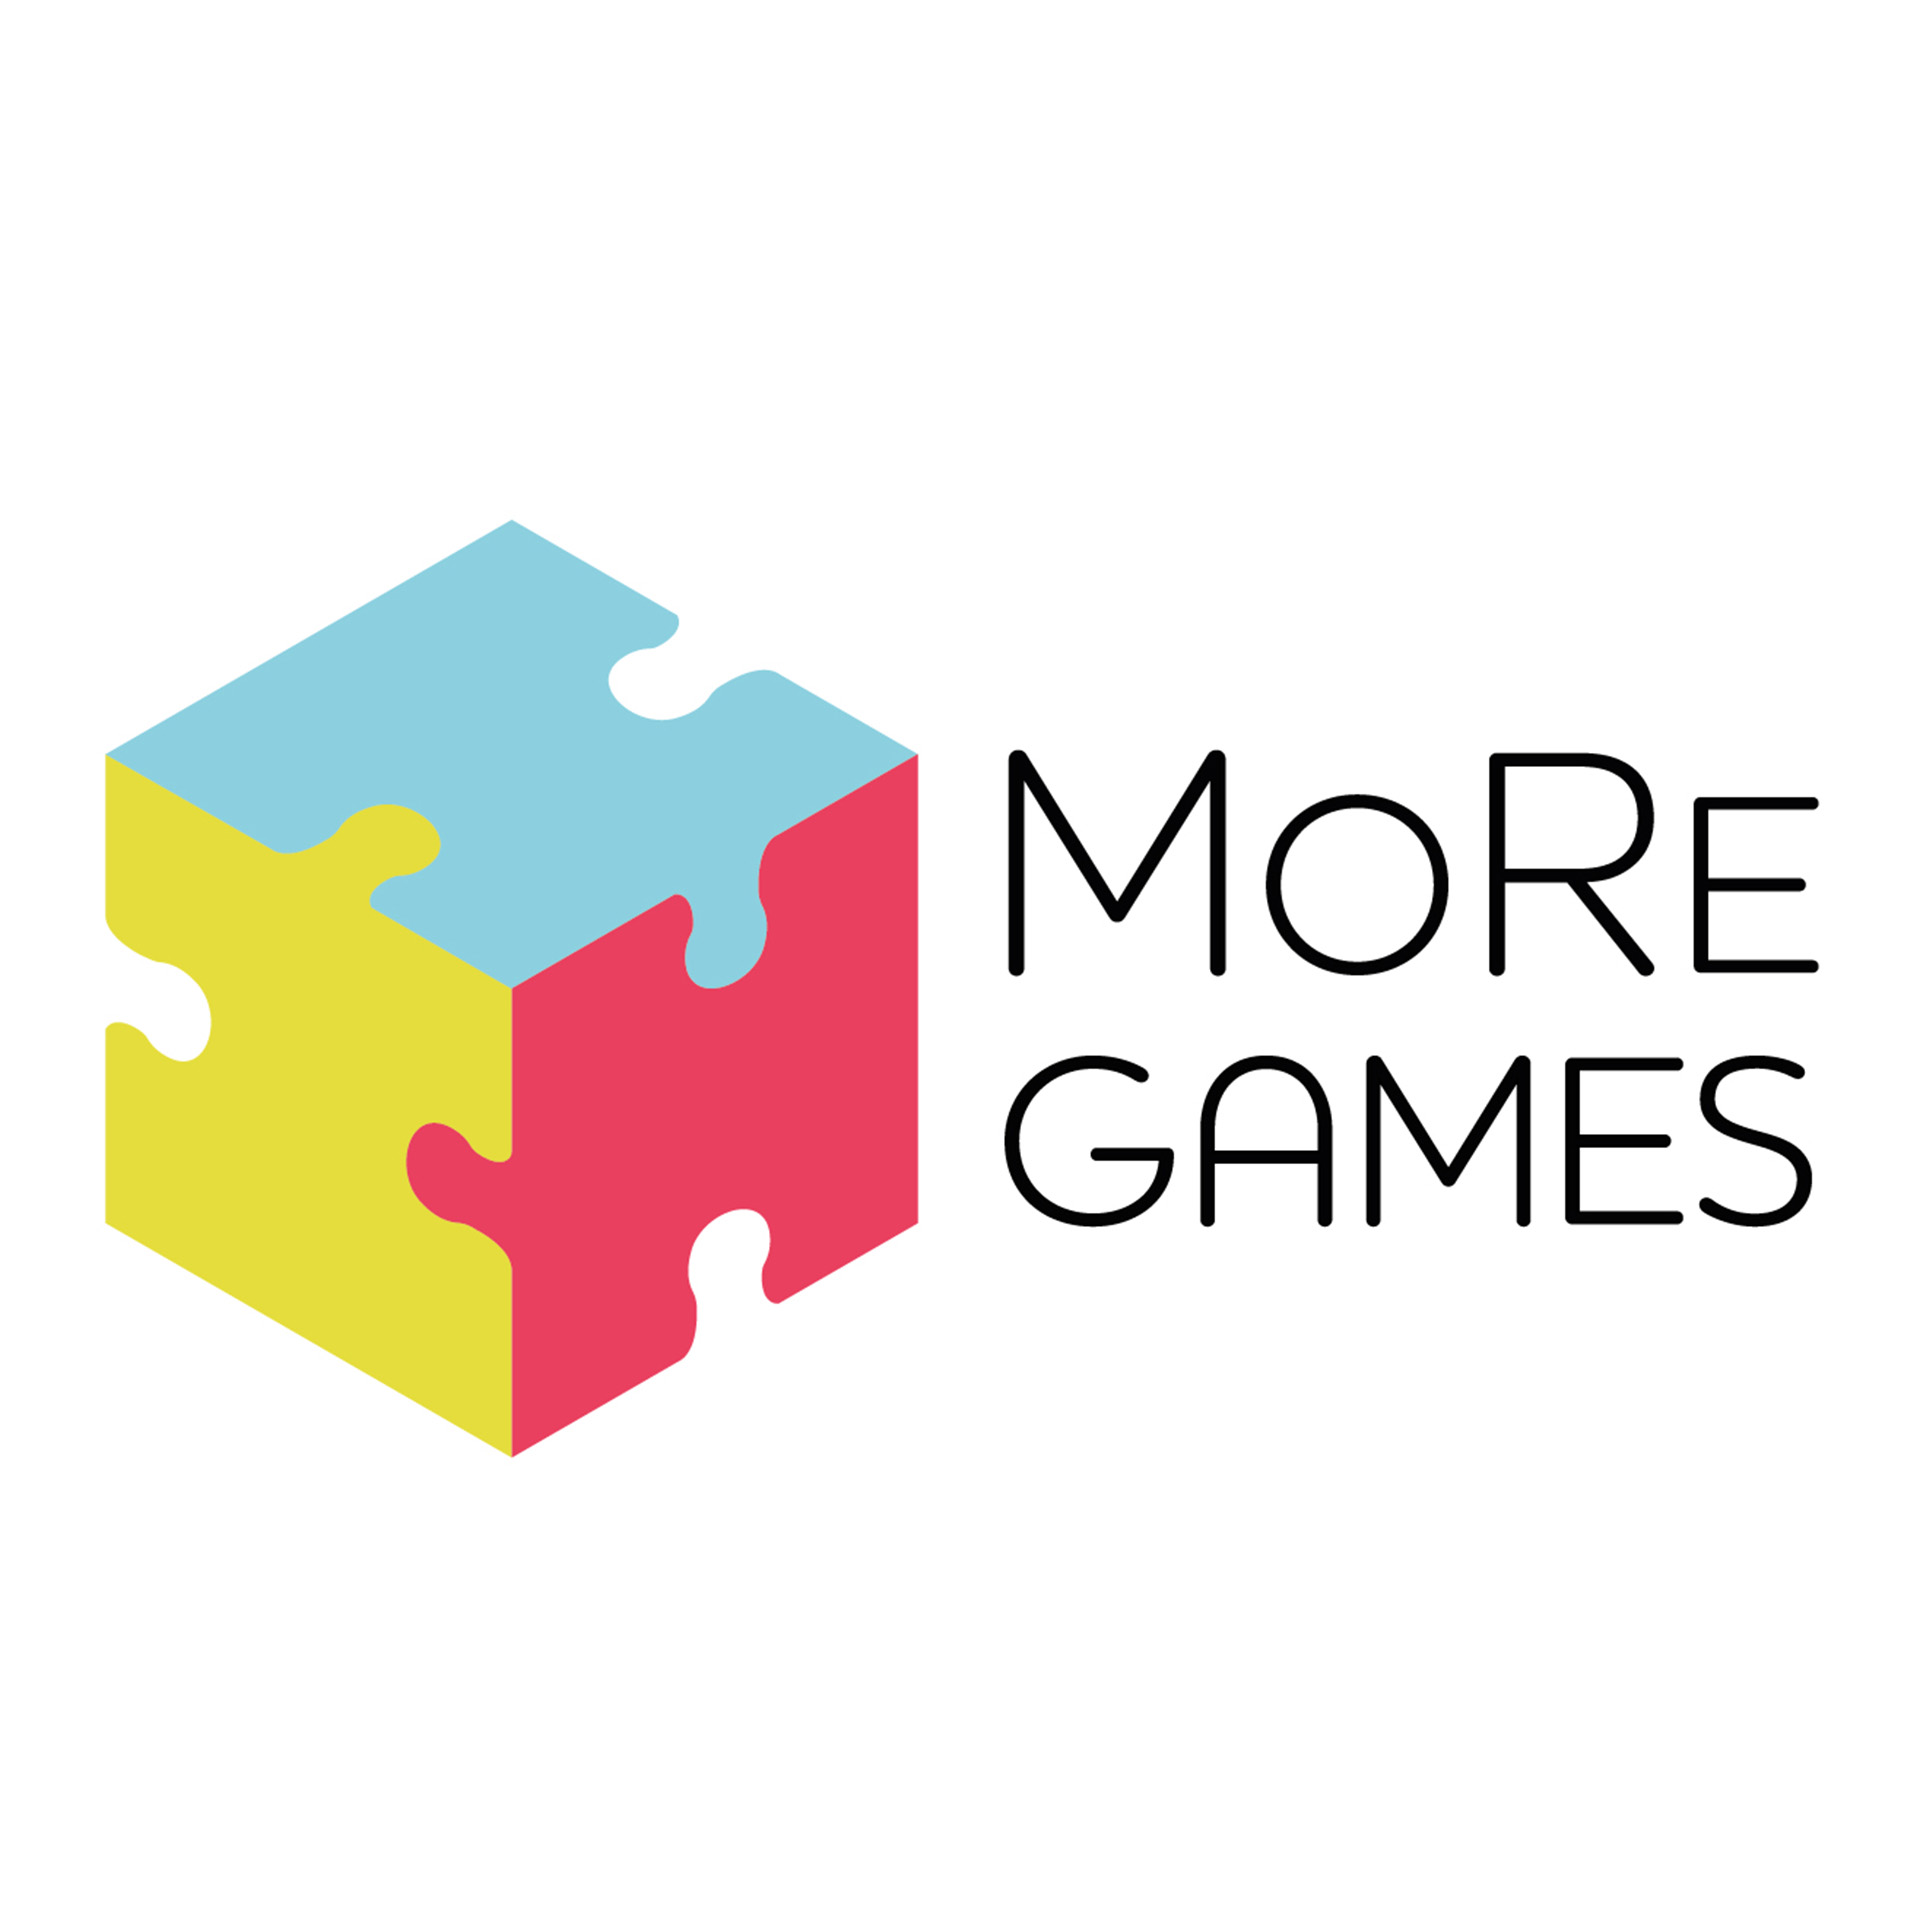 MoRe Games!